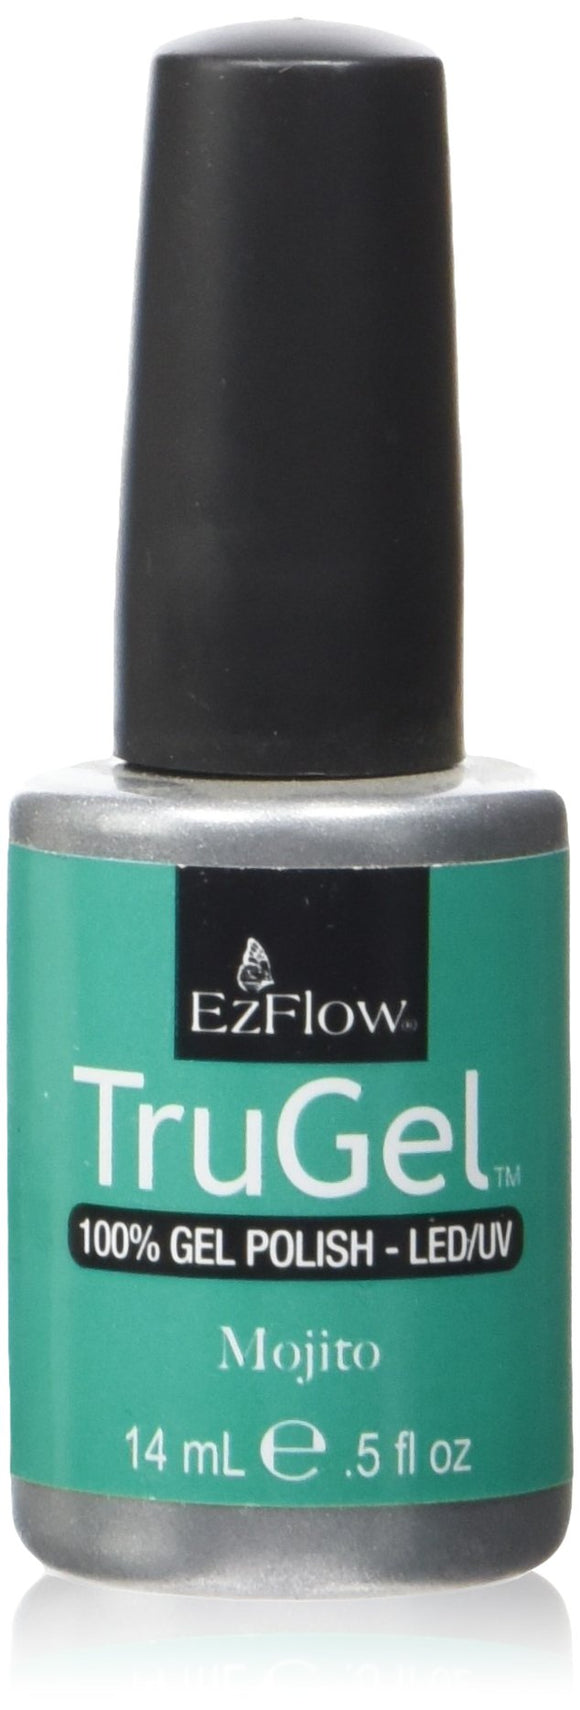 Ez Flow TruGel LED/UV Gel Polish - 14 mL (Mojito - EZTG42279)